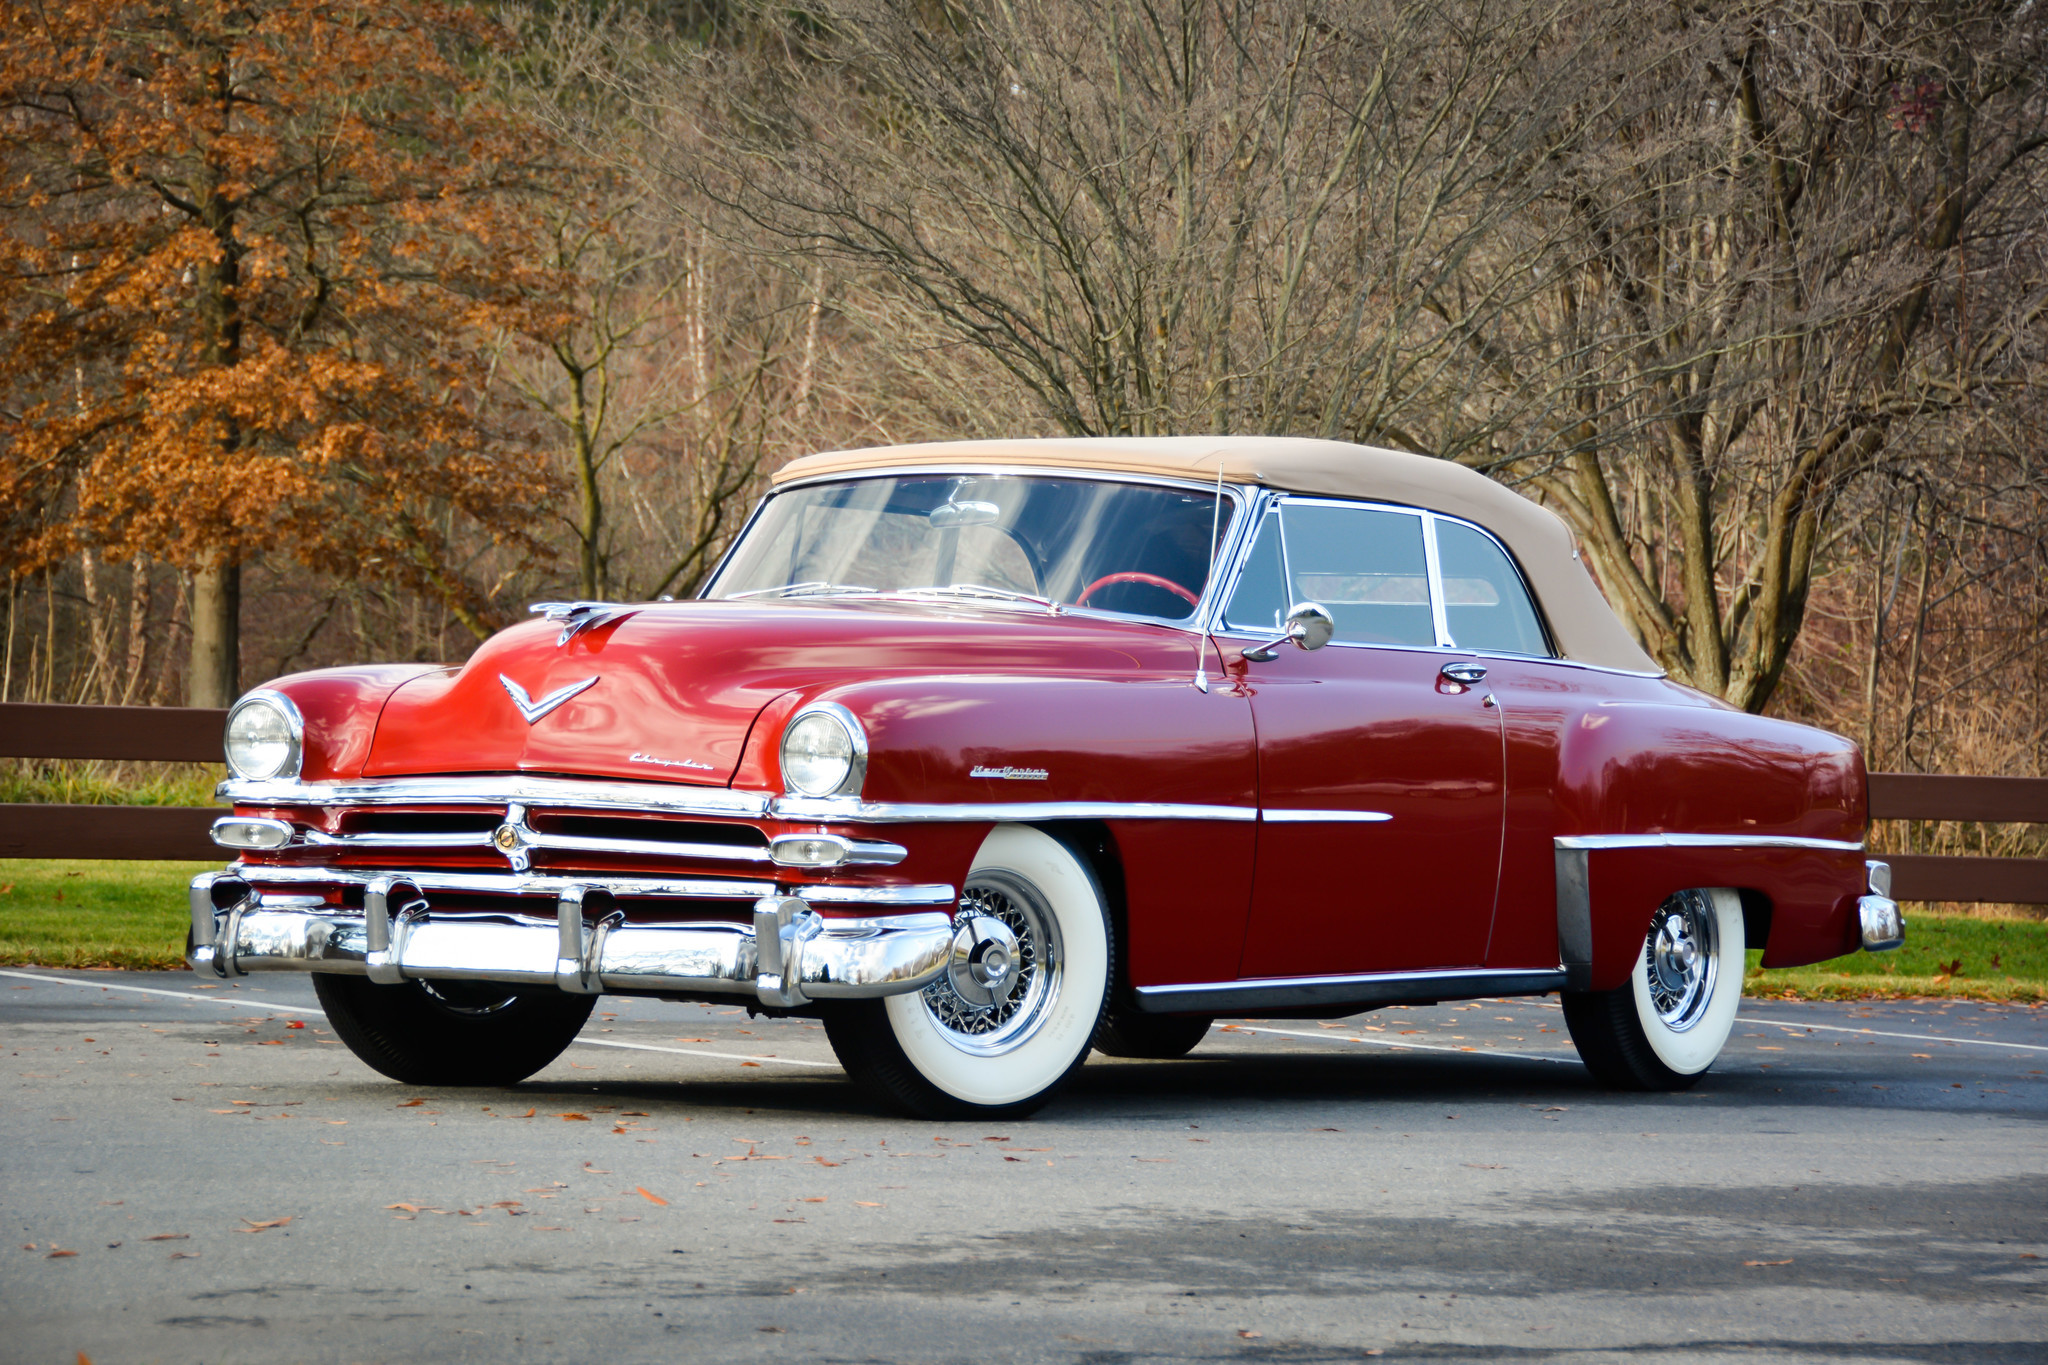 1953 Chrysler New Yorker Deluxe Convertible The Morning Call